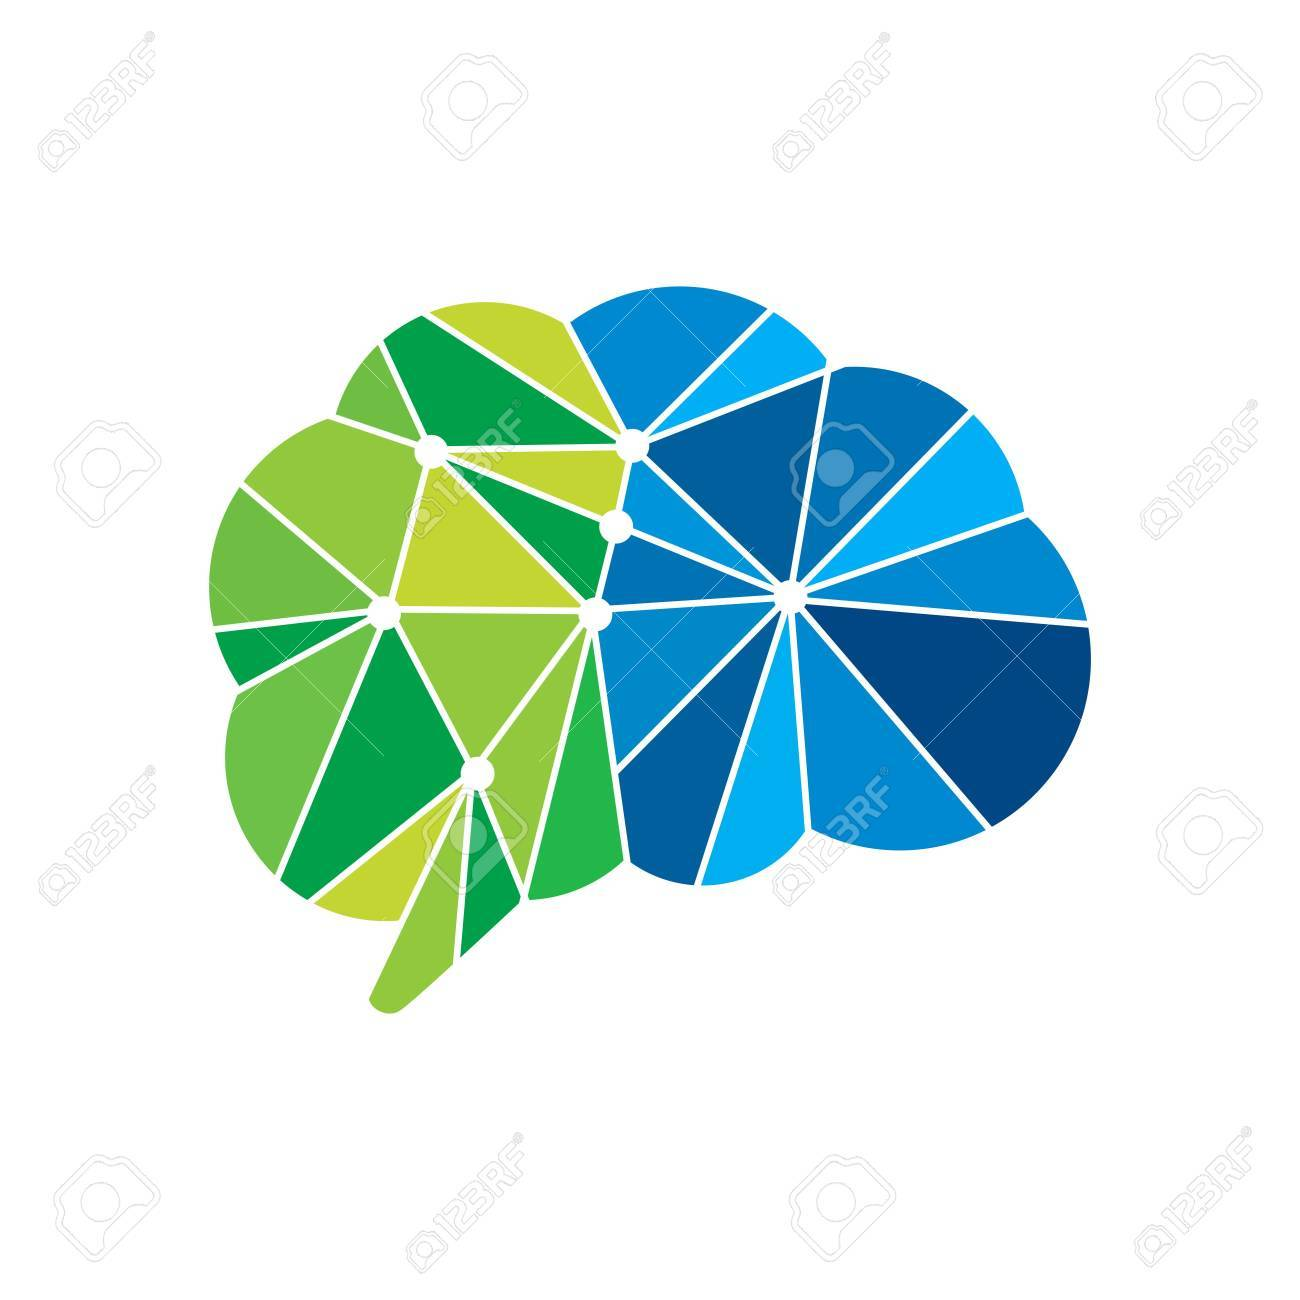 Brain Template   Brain Template Stock Photo Picture And Royalty Free Image Image